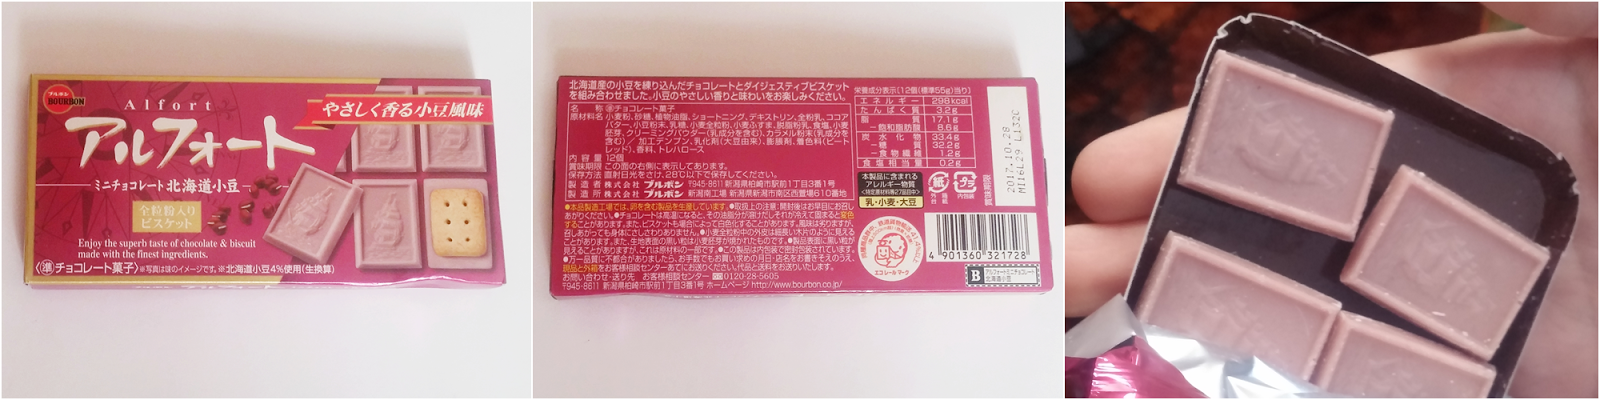 Tokyo Treat Alfort Chocolate Biscuit - Red Bean Flavor